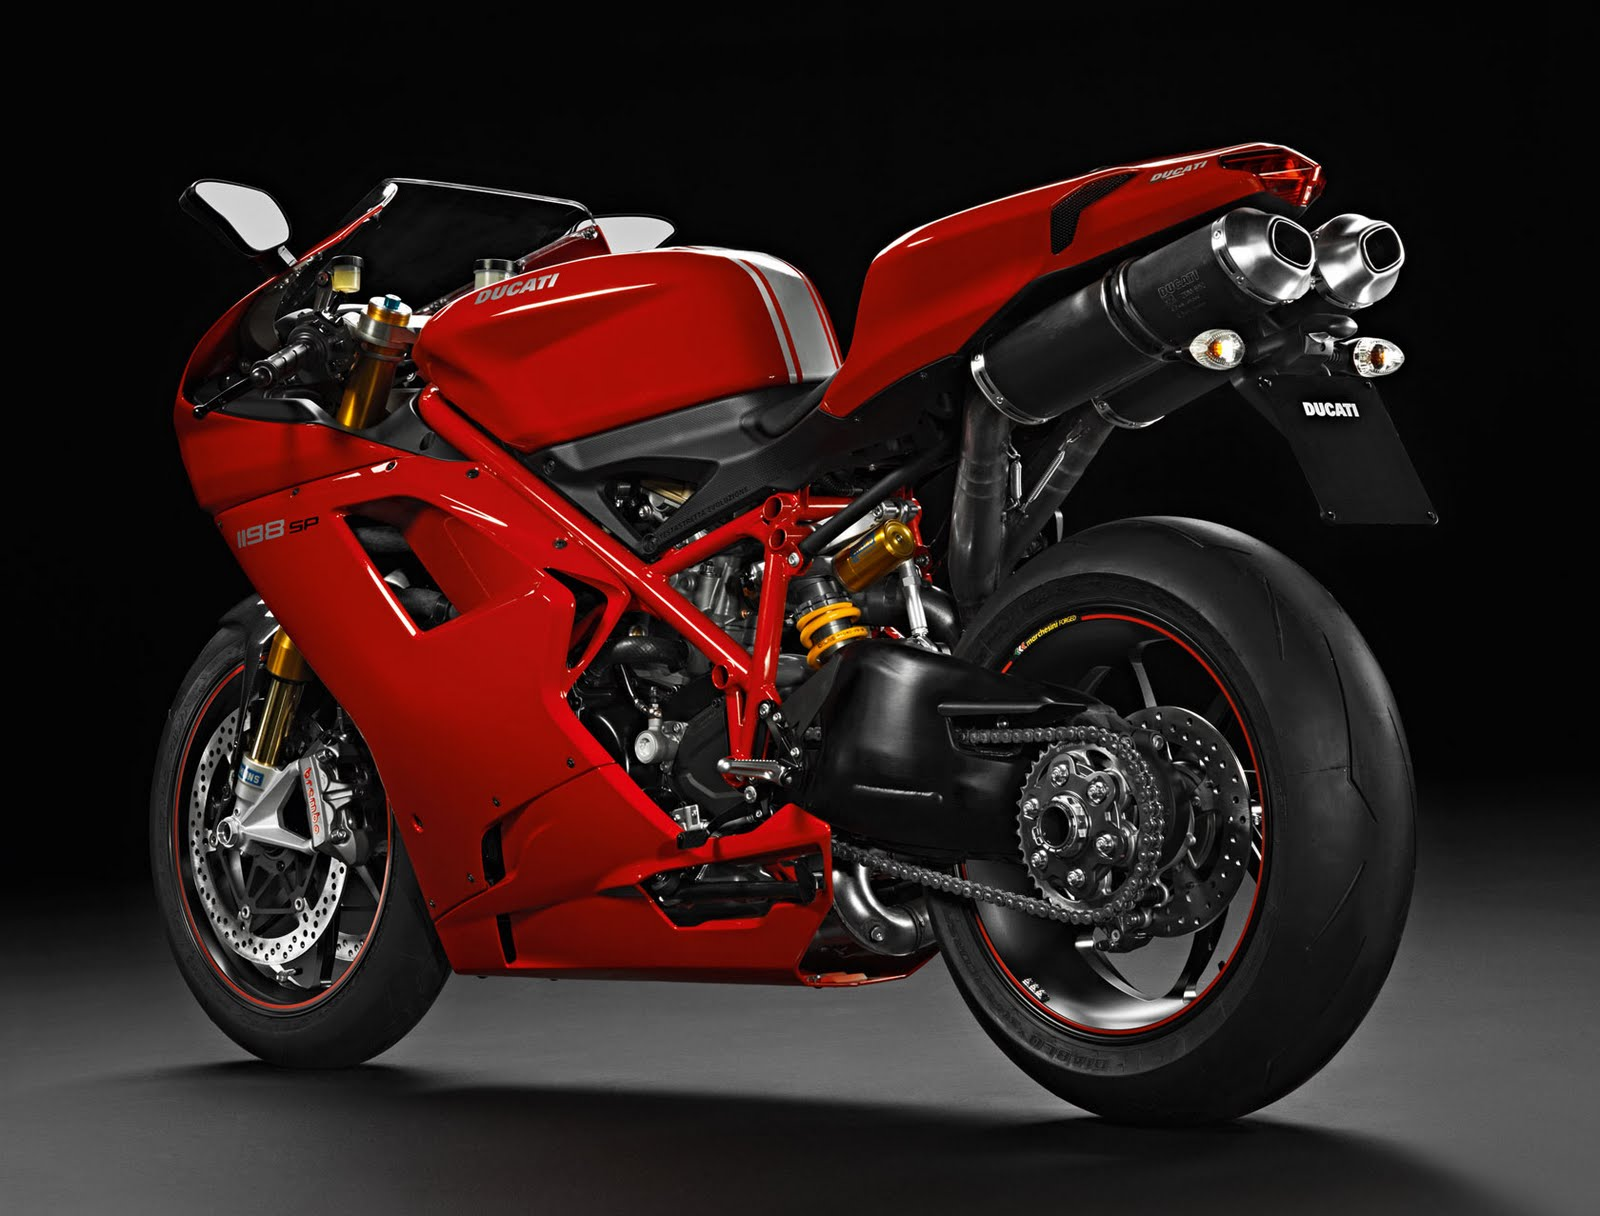 Top Motorcycle Wallpapers: 2011 Ducati 1198SP Superbike